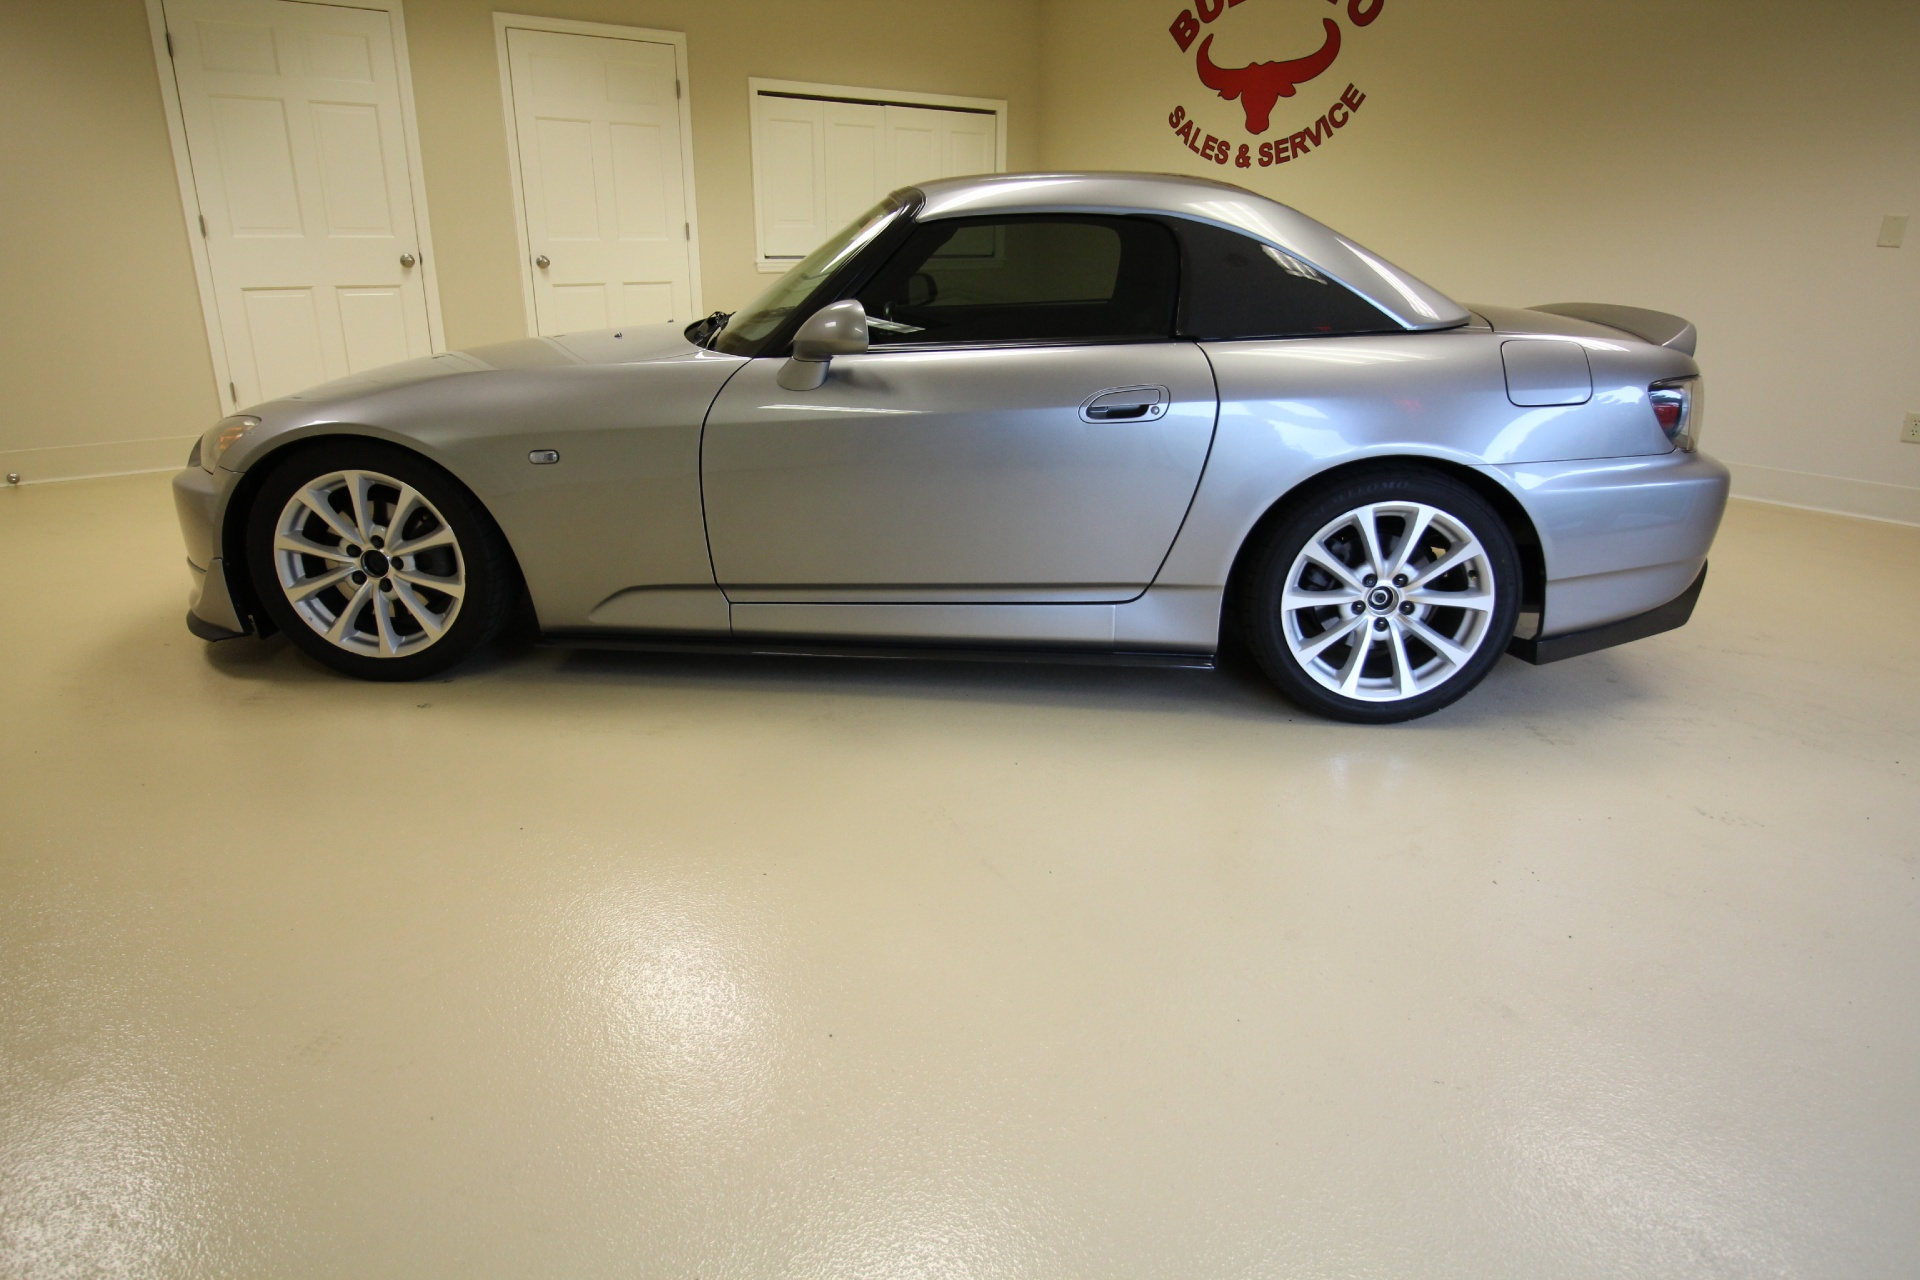 2006 Honda S2000 Hard Top Super Clean Lots Of Carbon Fiber